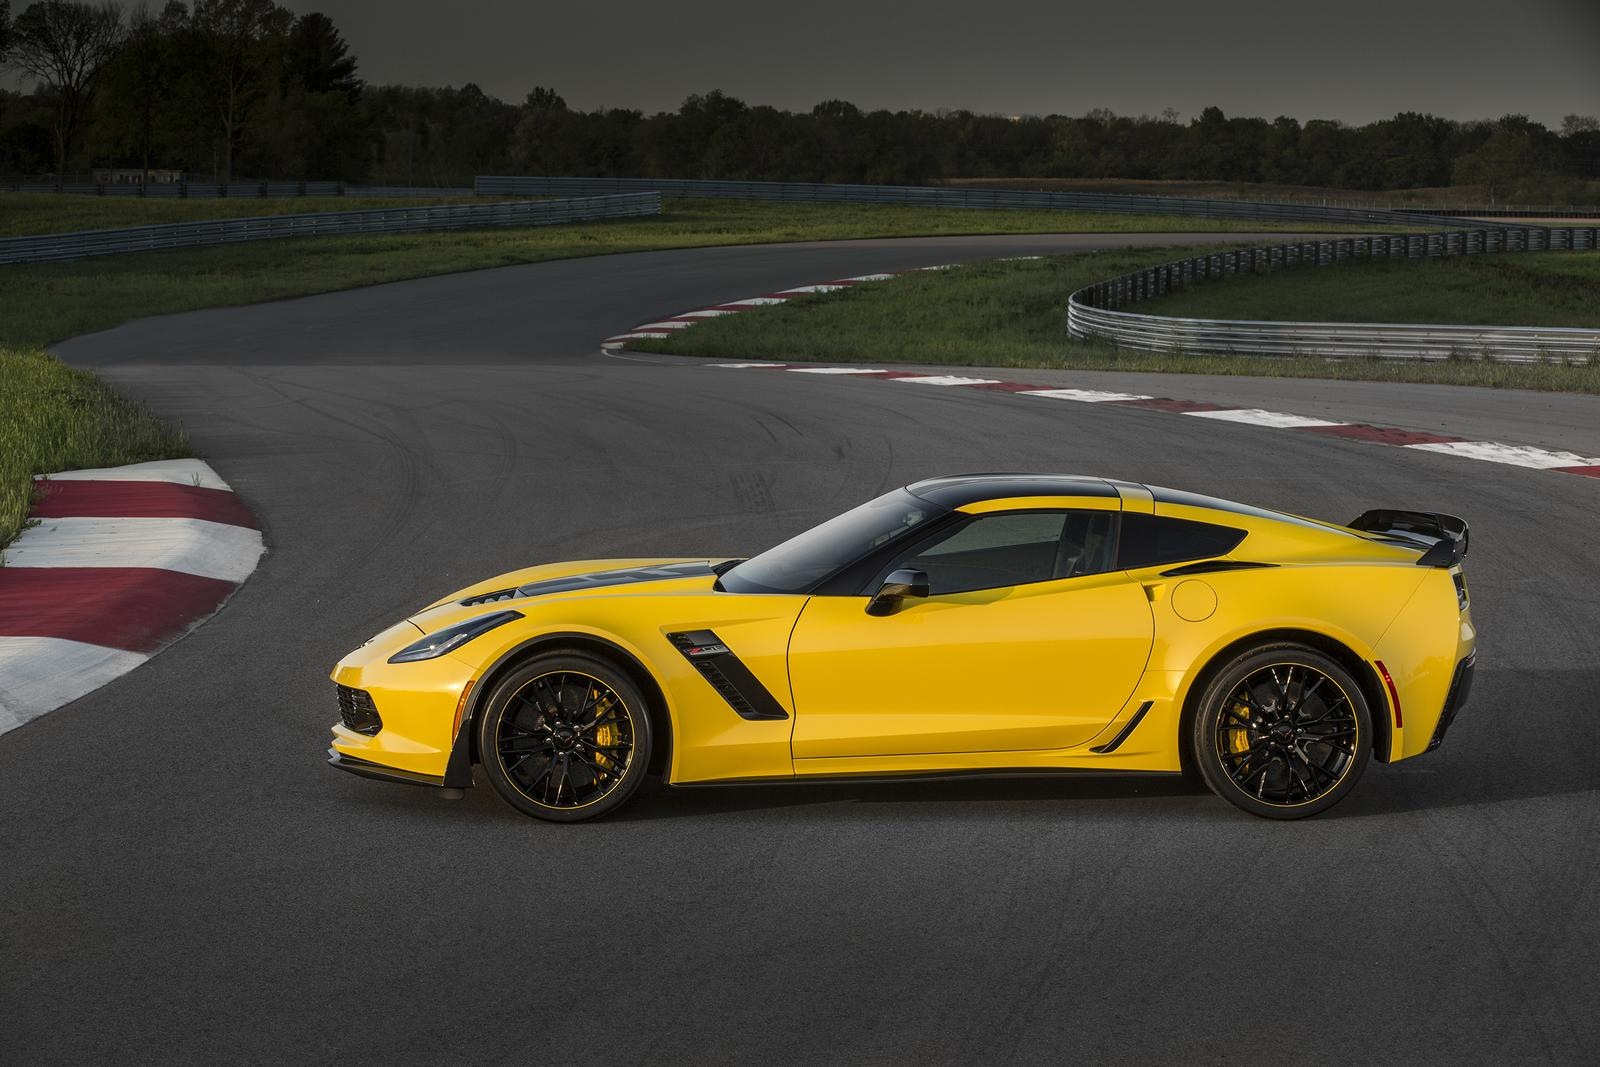 2016 corvette z06 c7 r edition unveiled. Black Bedroom Furniture Sets. Home Design Ideas